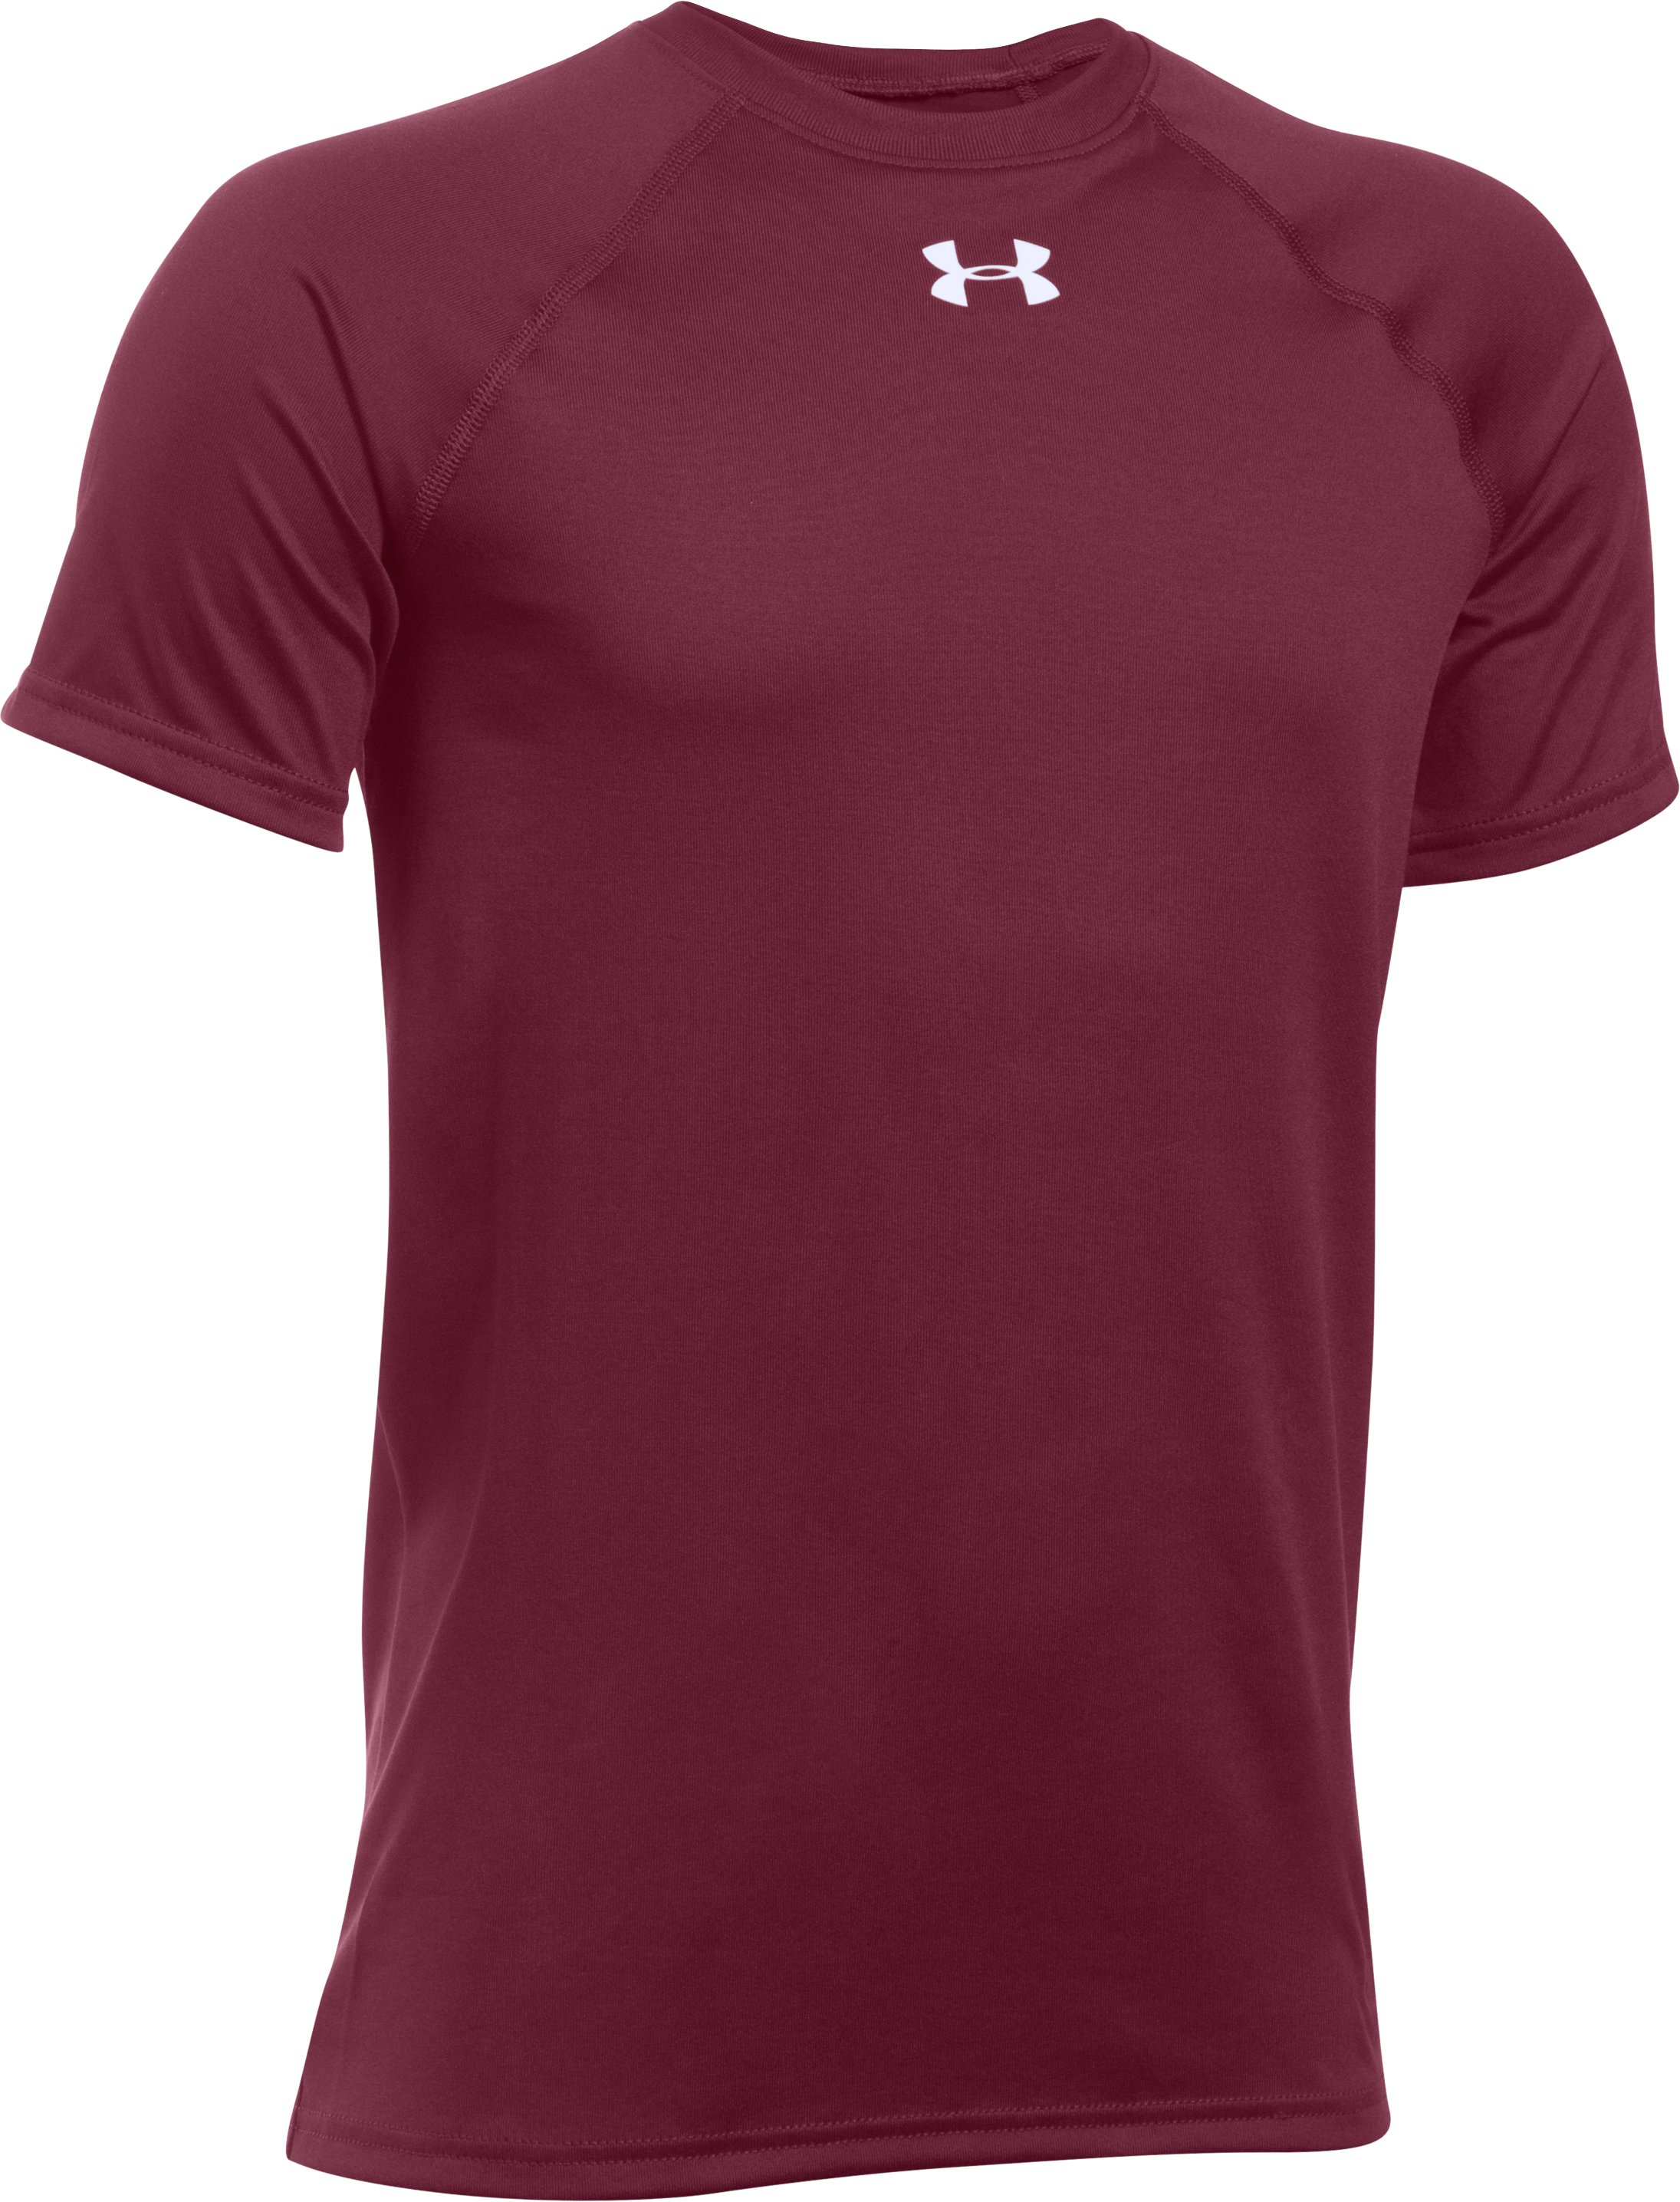 Boys' UA Locker Short Sleeve T-Shirt, Maroon